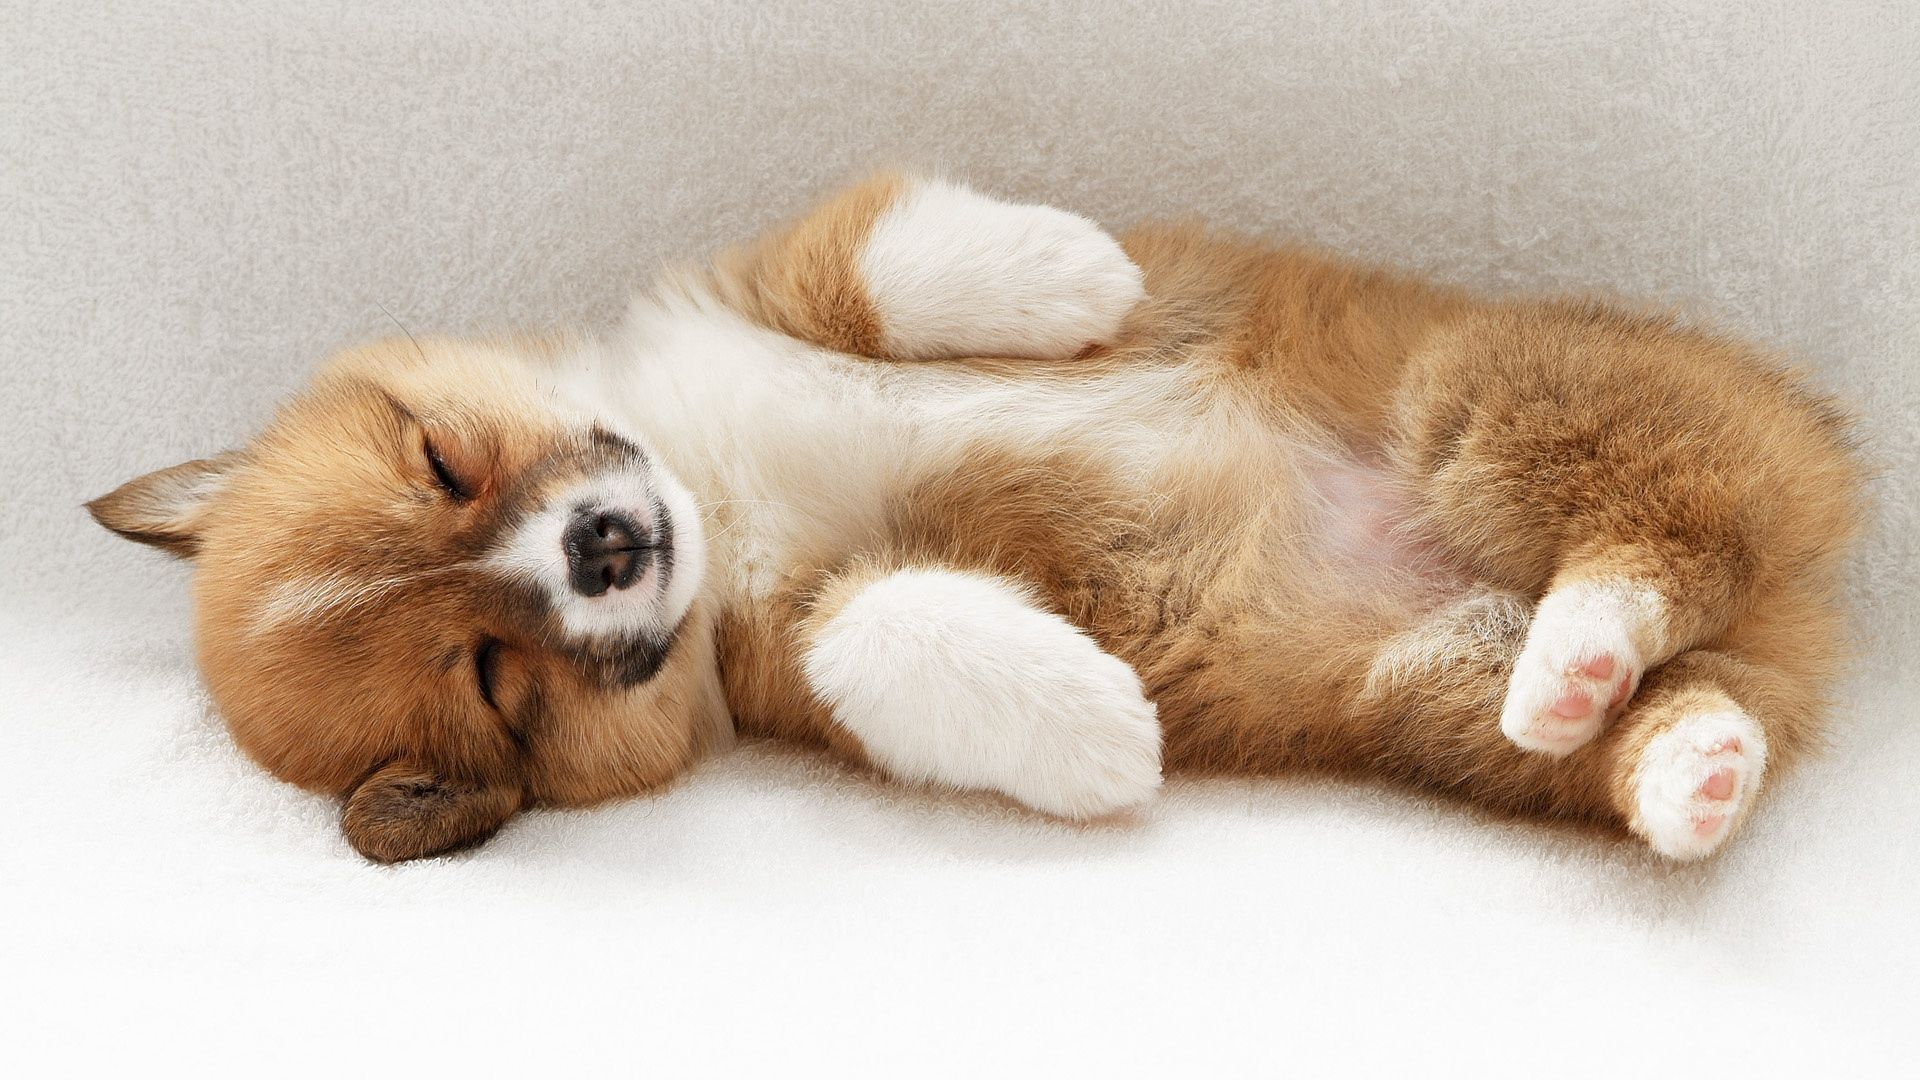 128873 download wallpaper Animals, Dog, Puppy, To Lie Down, Lie, Playful screensavers and pictures for free